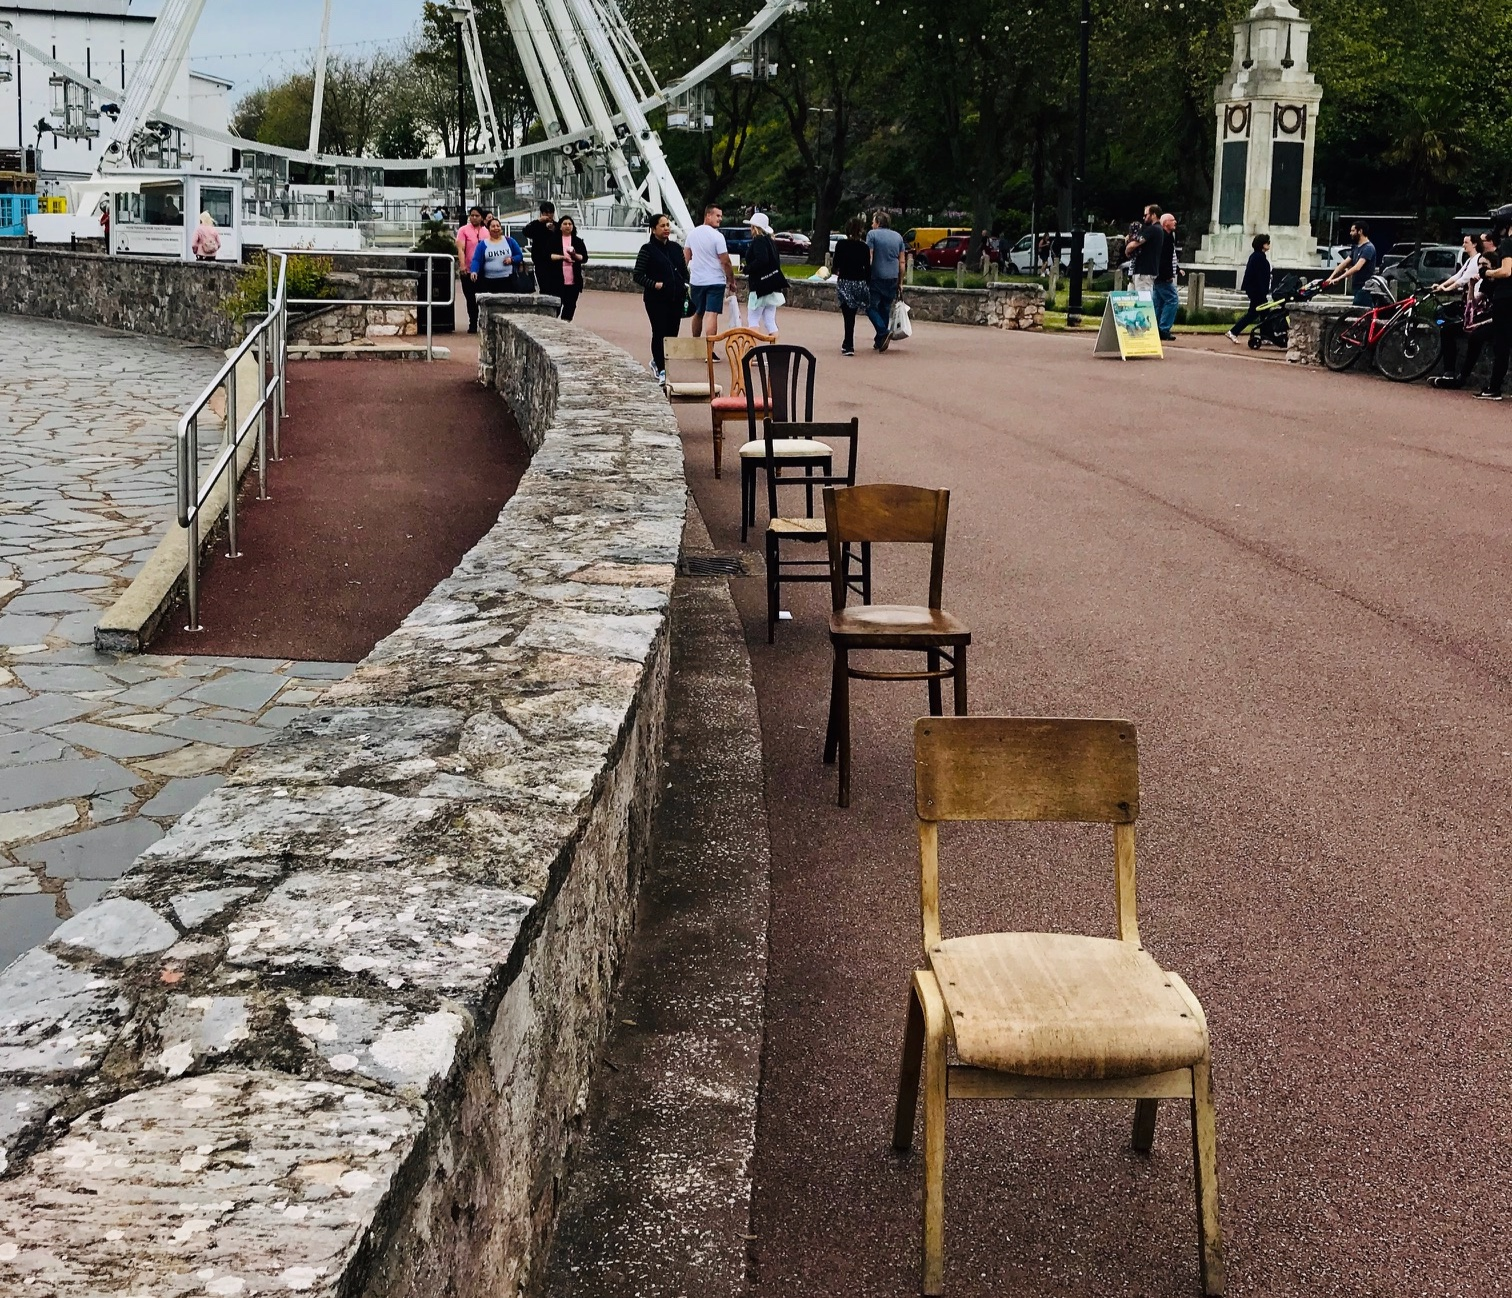 Playing with chairs … setting the scene in Princess Gardens.